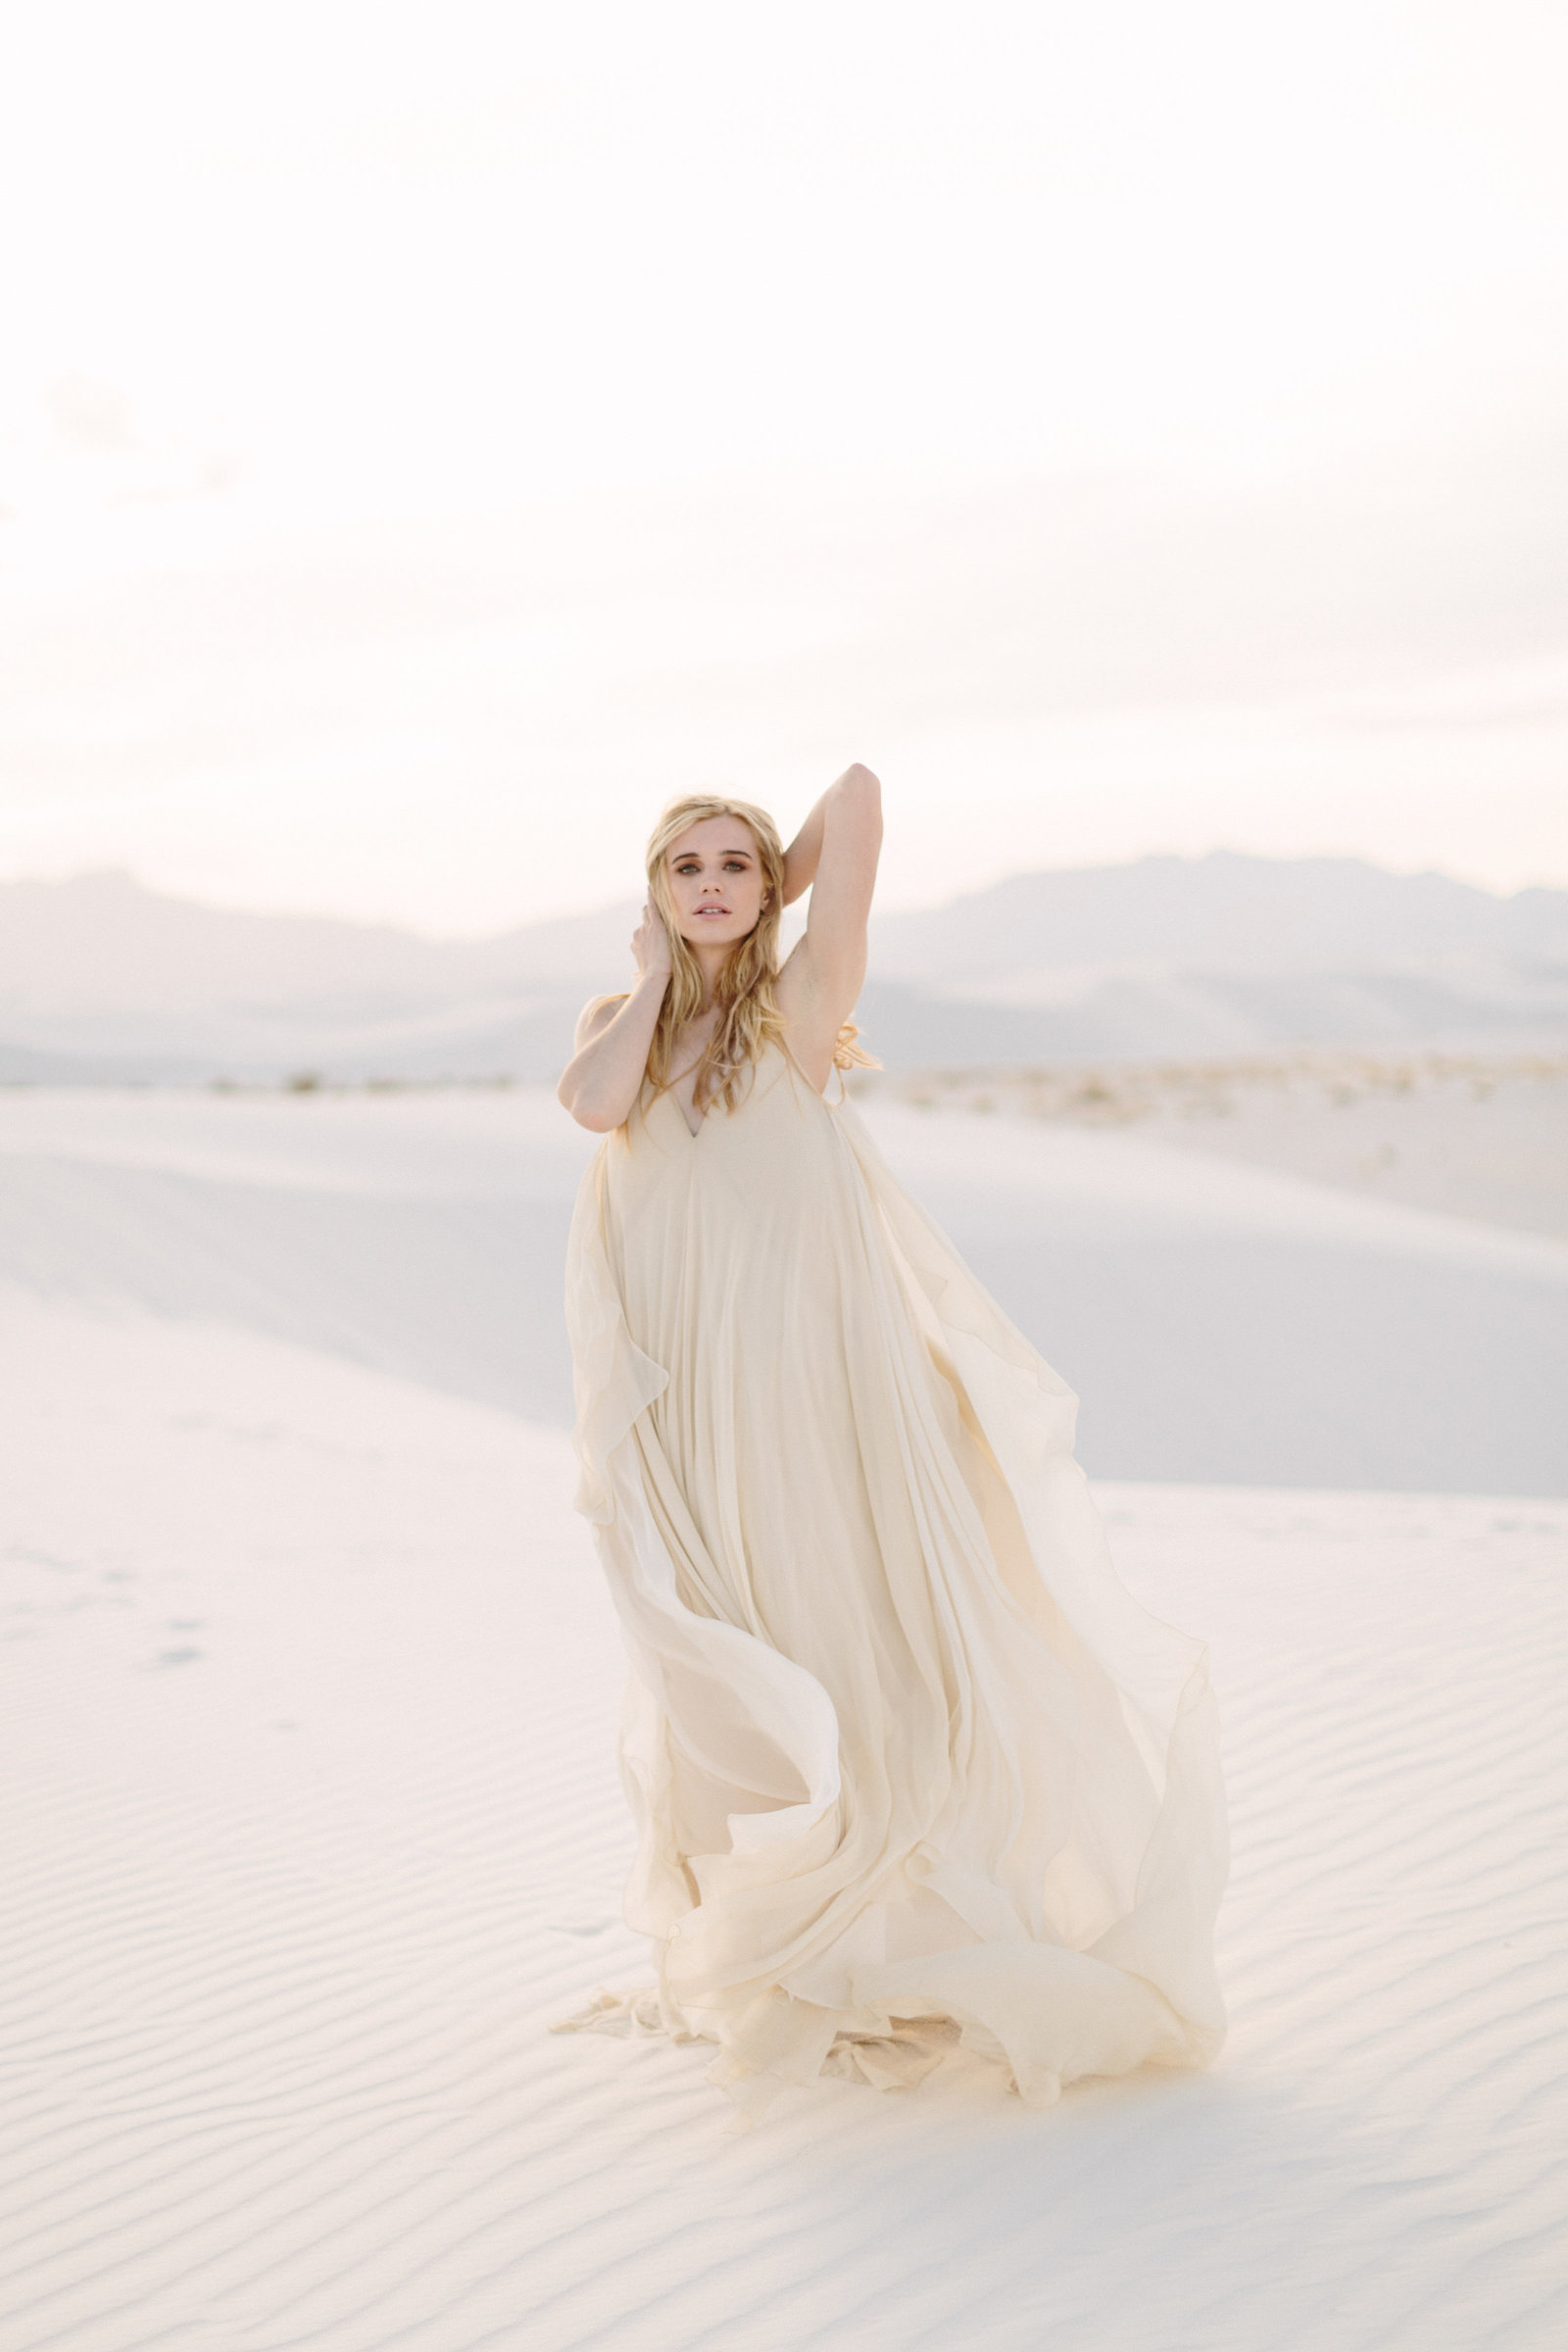 027-larissa-cleveland-editorial-fashion-wedding_photographer-san-francisco-carmel-napa-california-IG2A8576